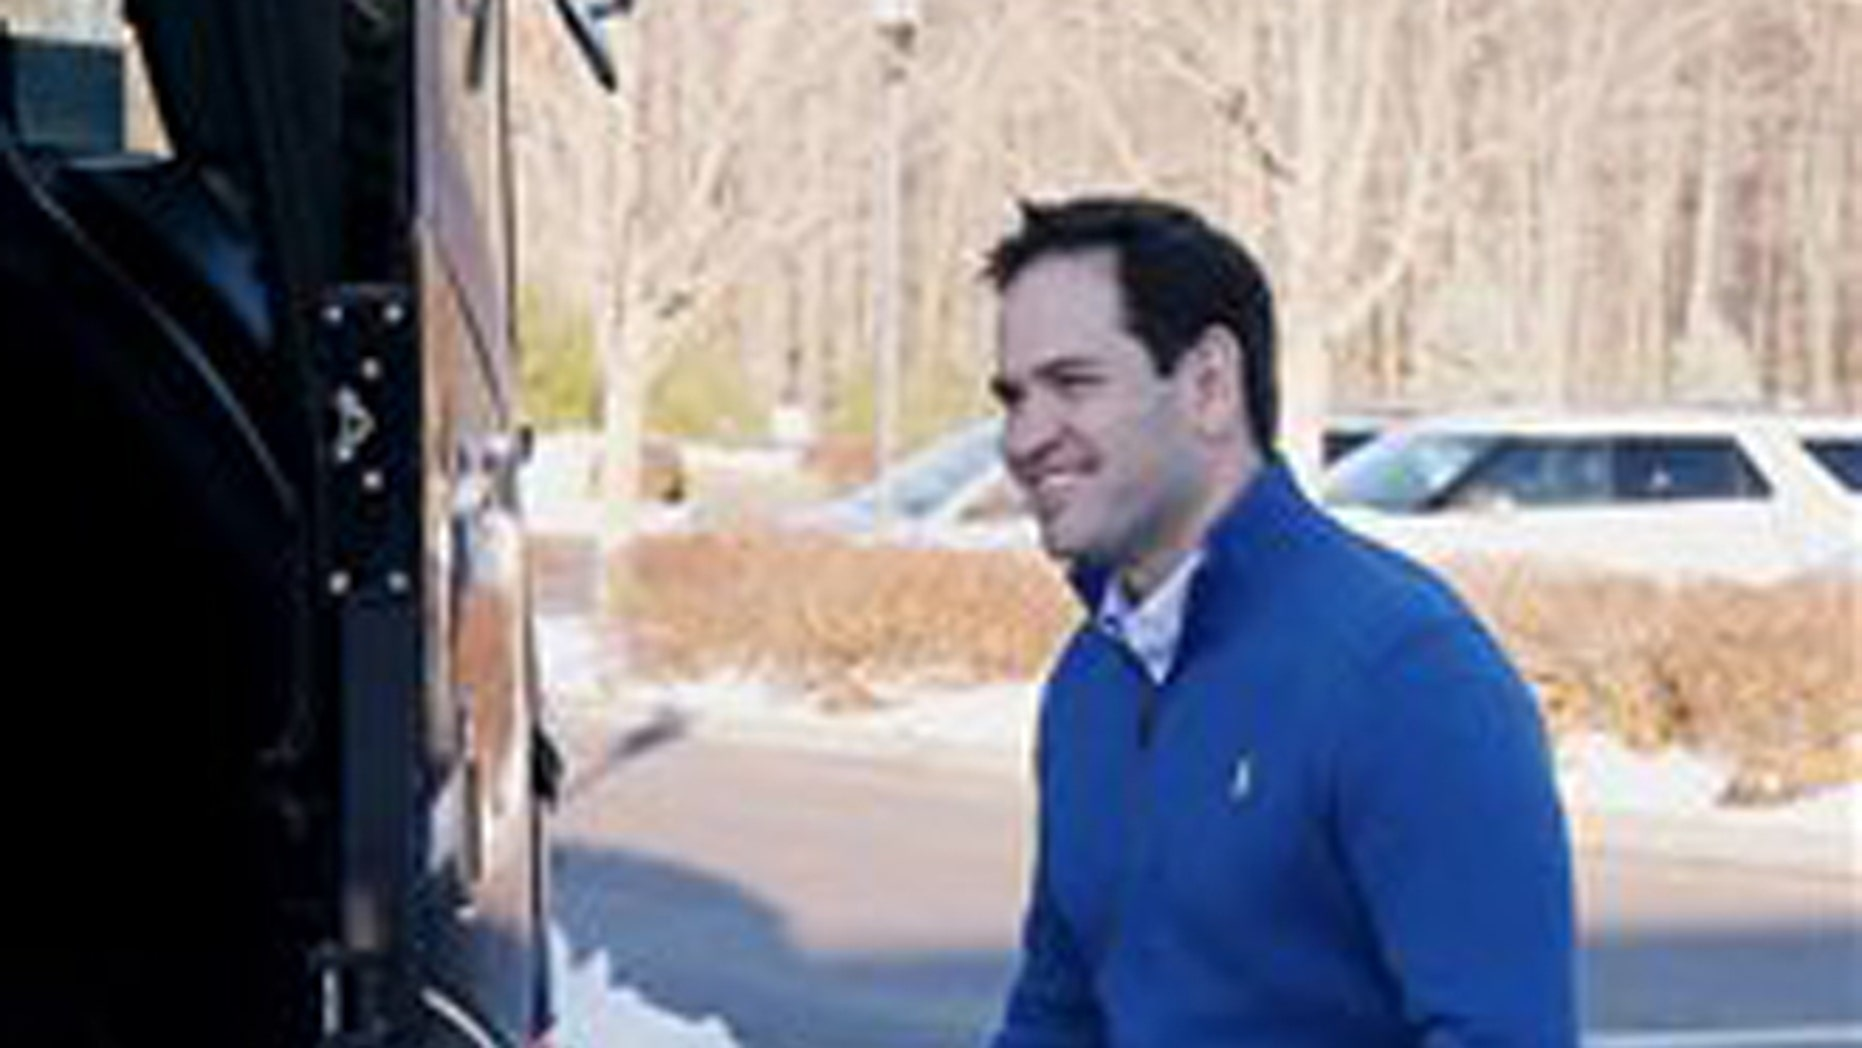 Republican presidential candidate Sen. Marco Rubio, R-Fla., steps into his campaign bus after a stop at the Atkinson Country Club, Sunday, Jan. 3, 2016, in Atkinson, N.H. (AP Photo/Mary Schwalm)